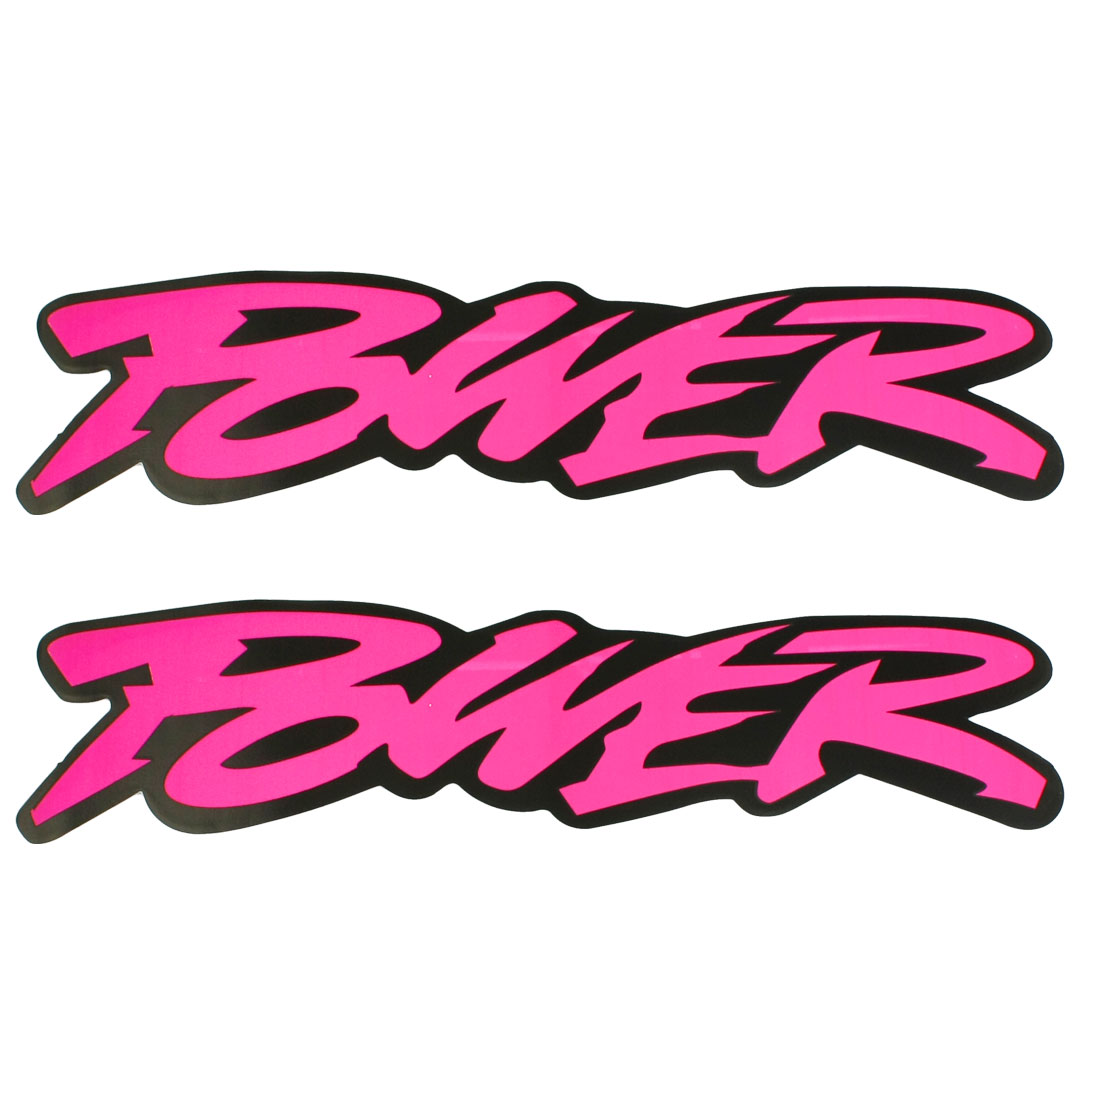 2 Pcs Magenta English Words POWER Decorative Sticker for Race Car